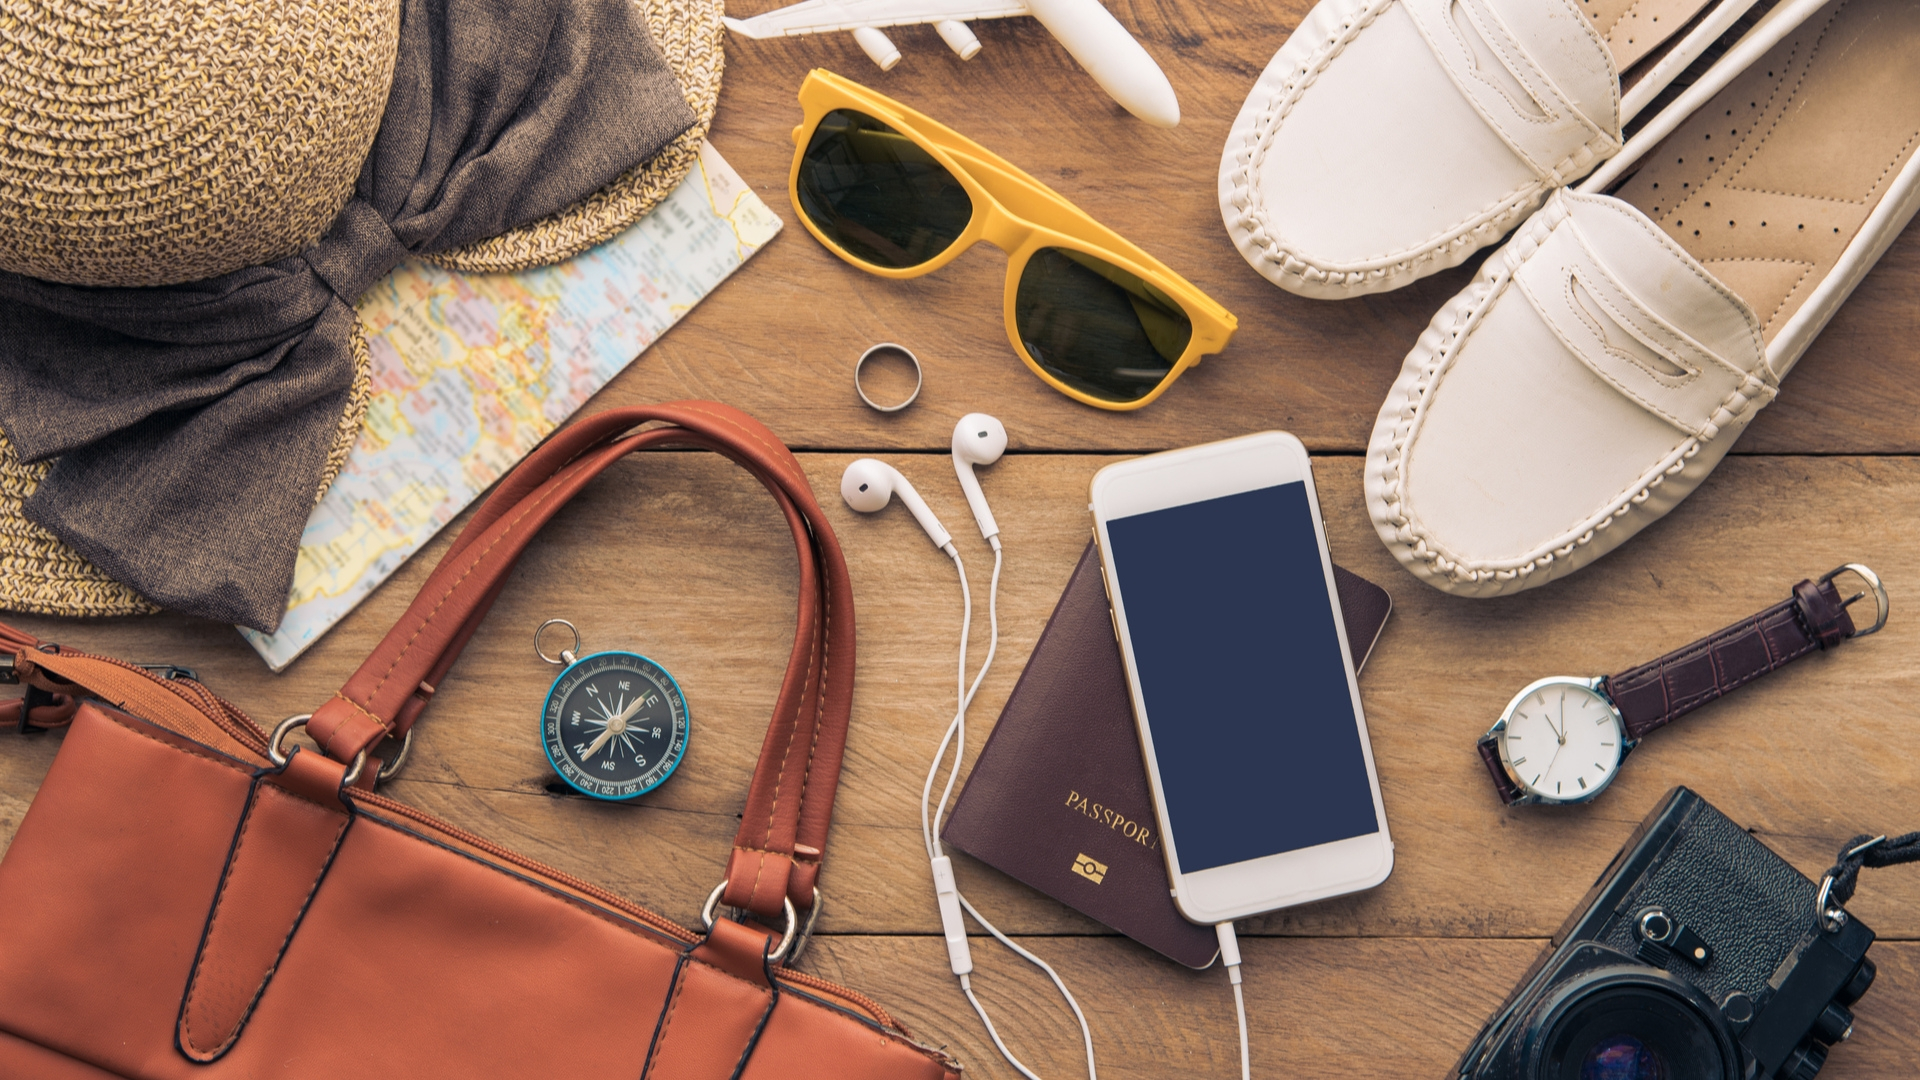 6 Travel Gadgets Everyone Should Have